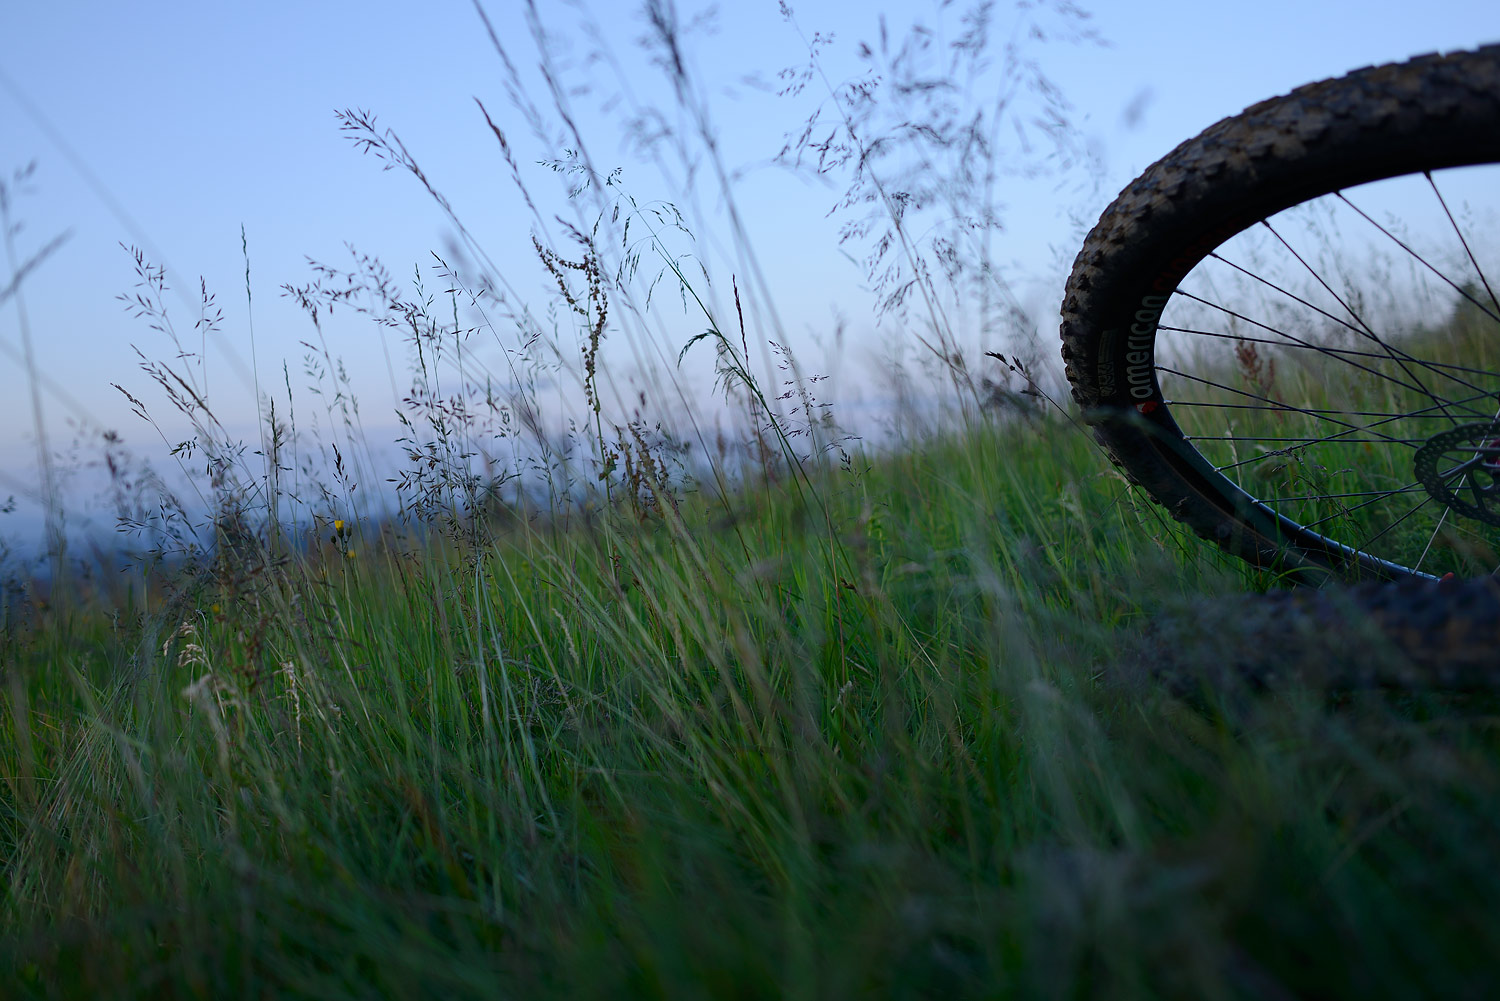 Bikepacking-editorial-photography-Przemek-Skrzypek-wheel.jpg